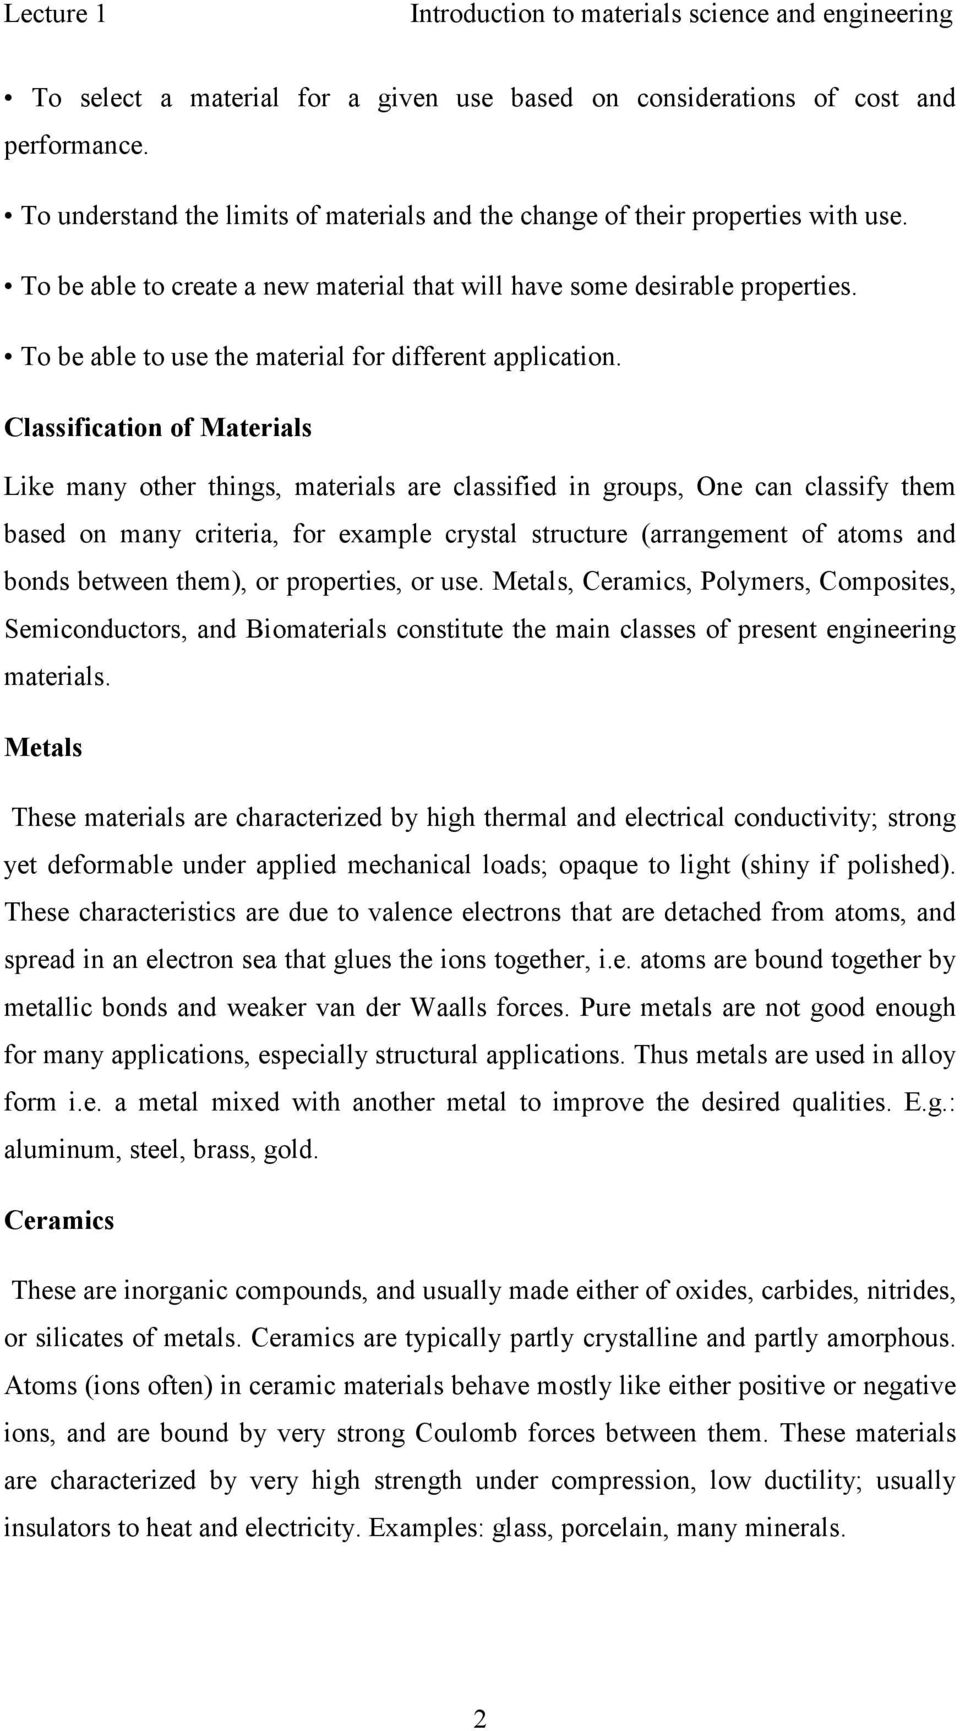 Classification of Materials Like many other things, materials are classified in groups, One can classify them based on many criteria, for example crystal structure (arrangement of atoms and bonds